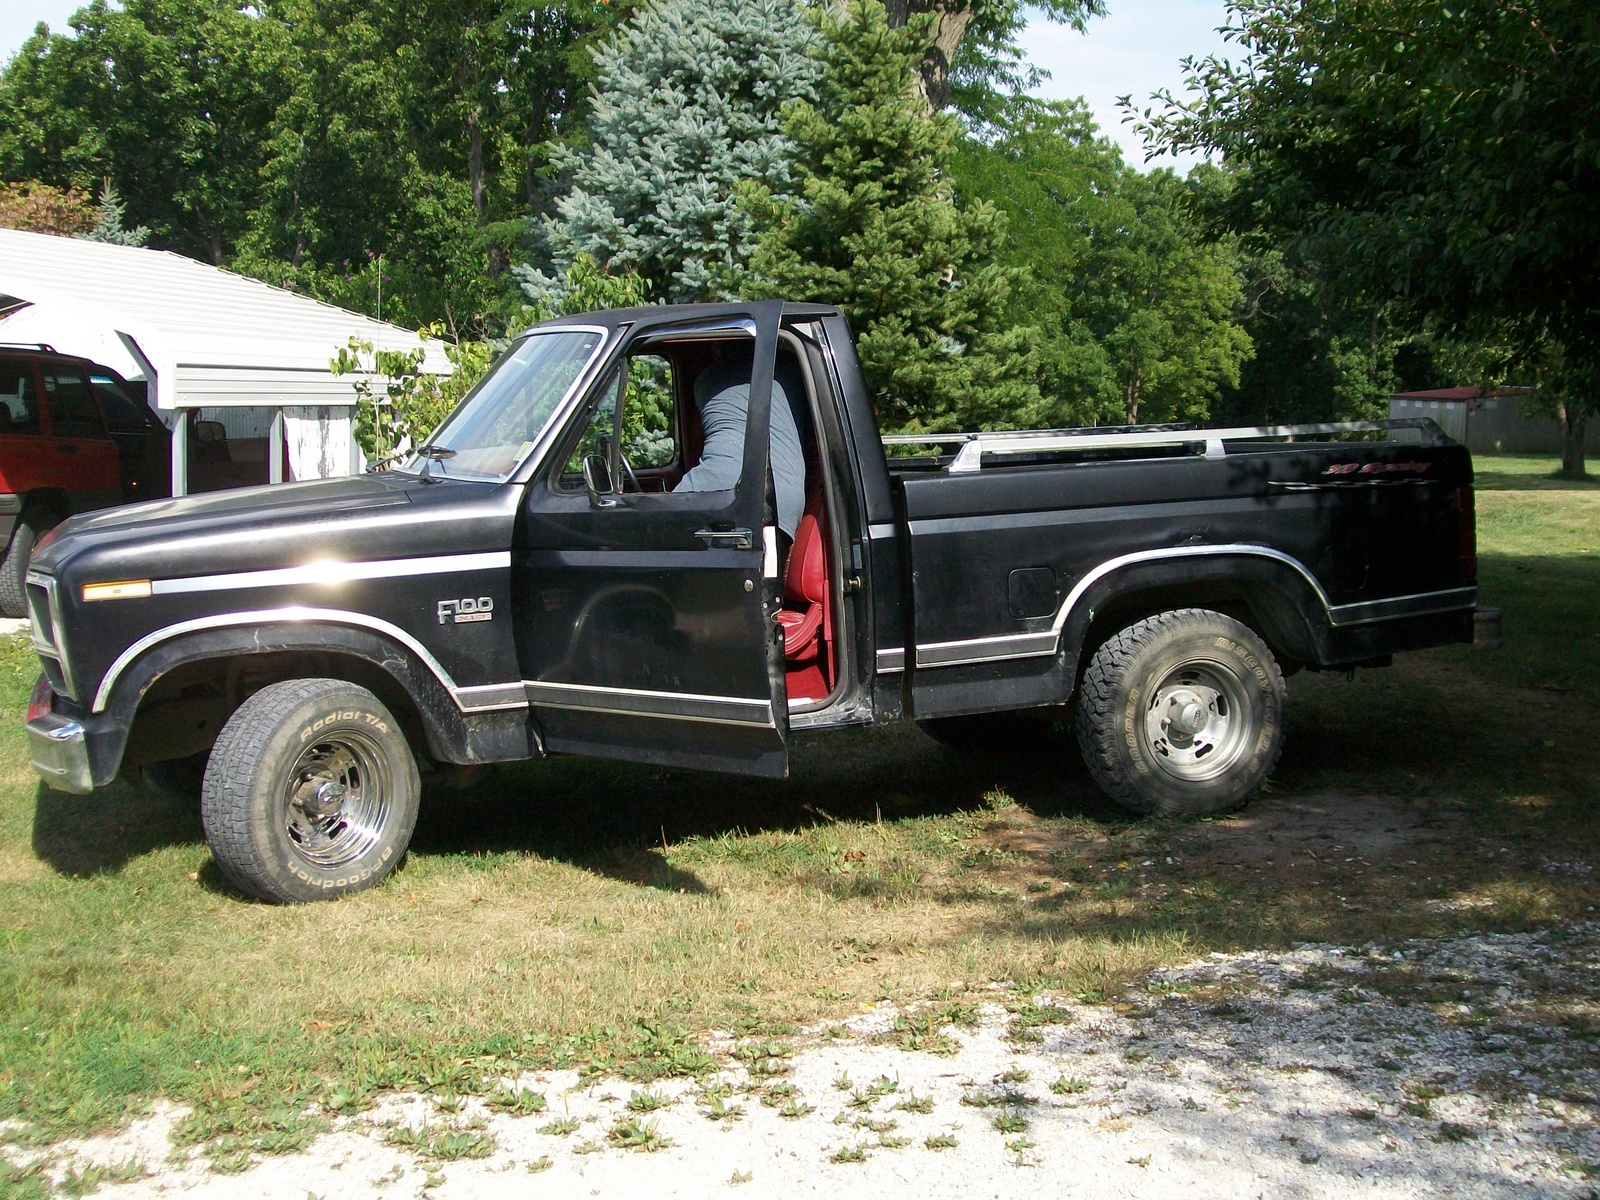 1983 Ford F-100 picture